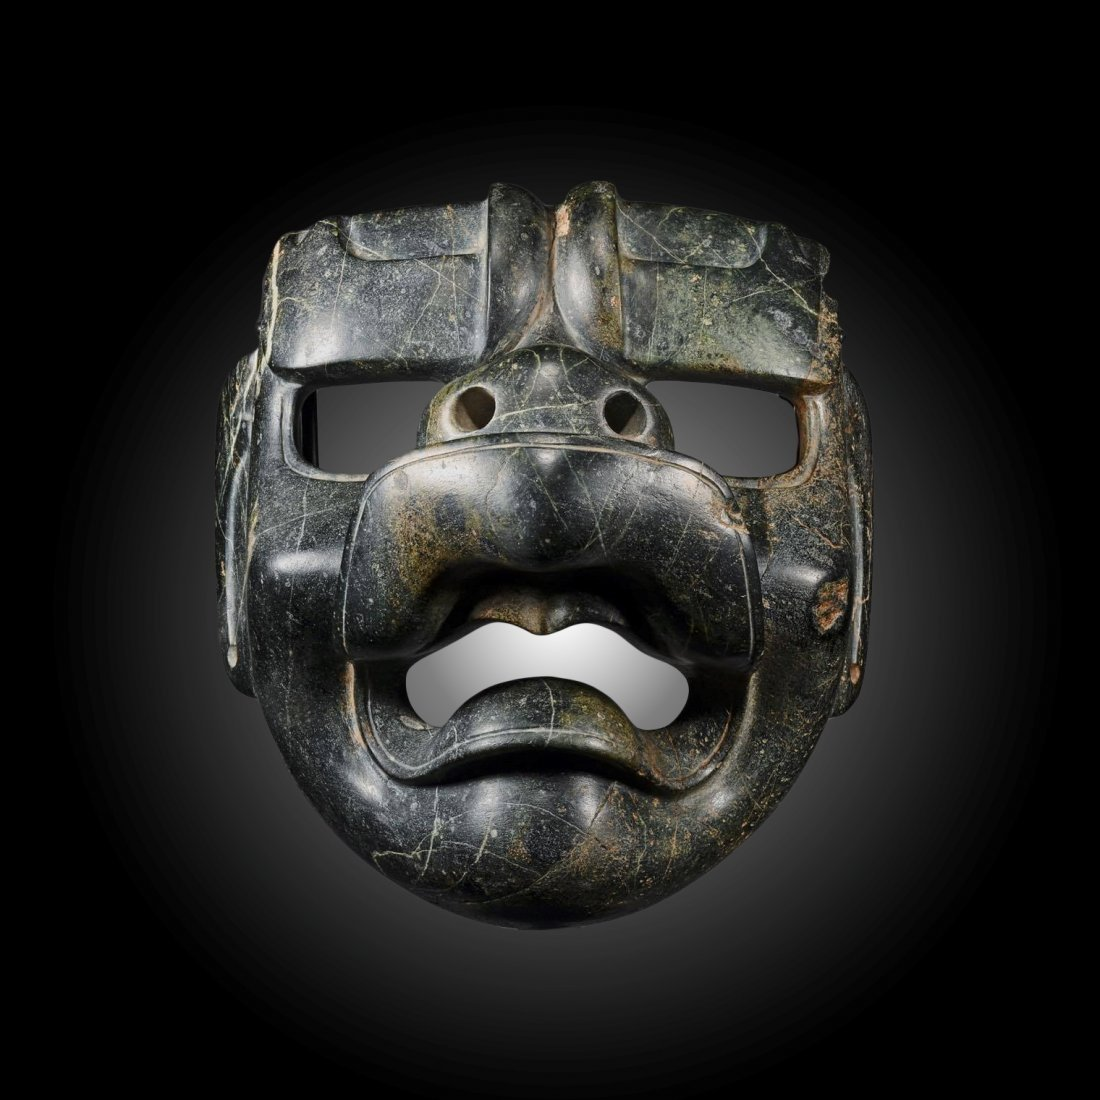 Important Authenticated Pre-Columbian Olmec Jaguar Mask